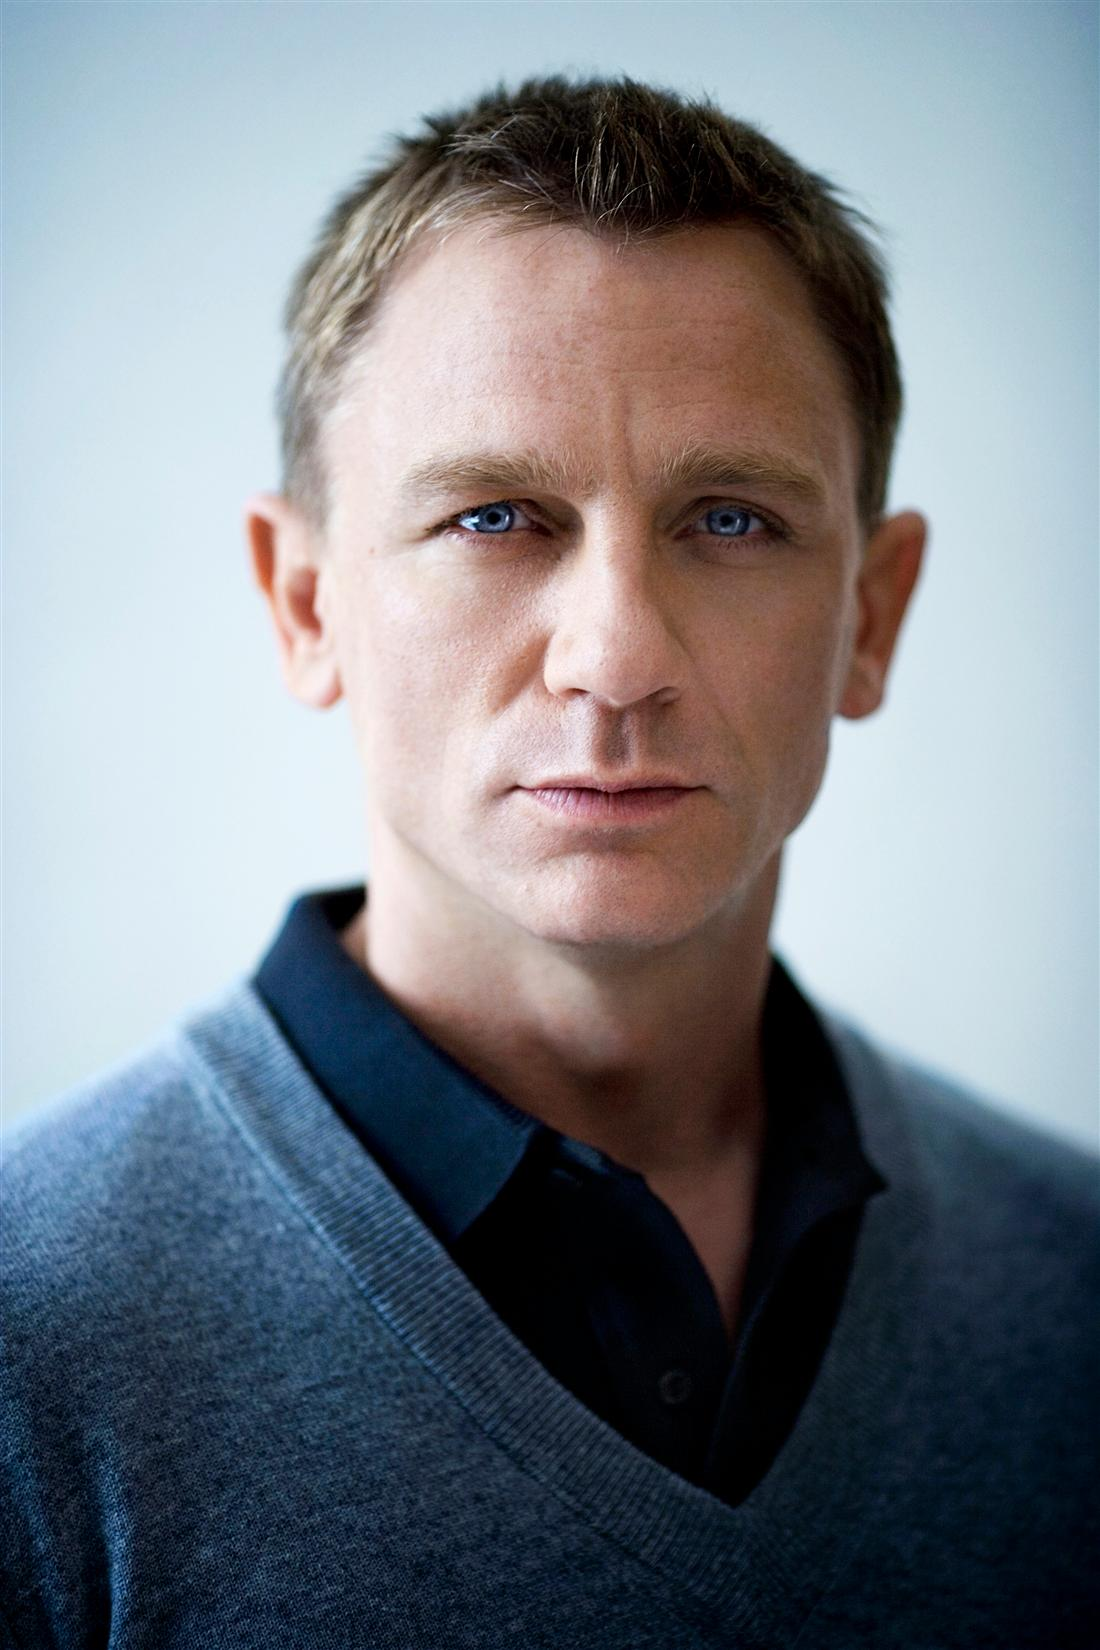 daniel craig hair style virile bond hairstyles for hairstyles 2017 3604